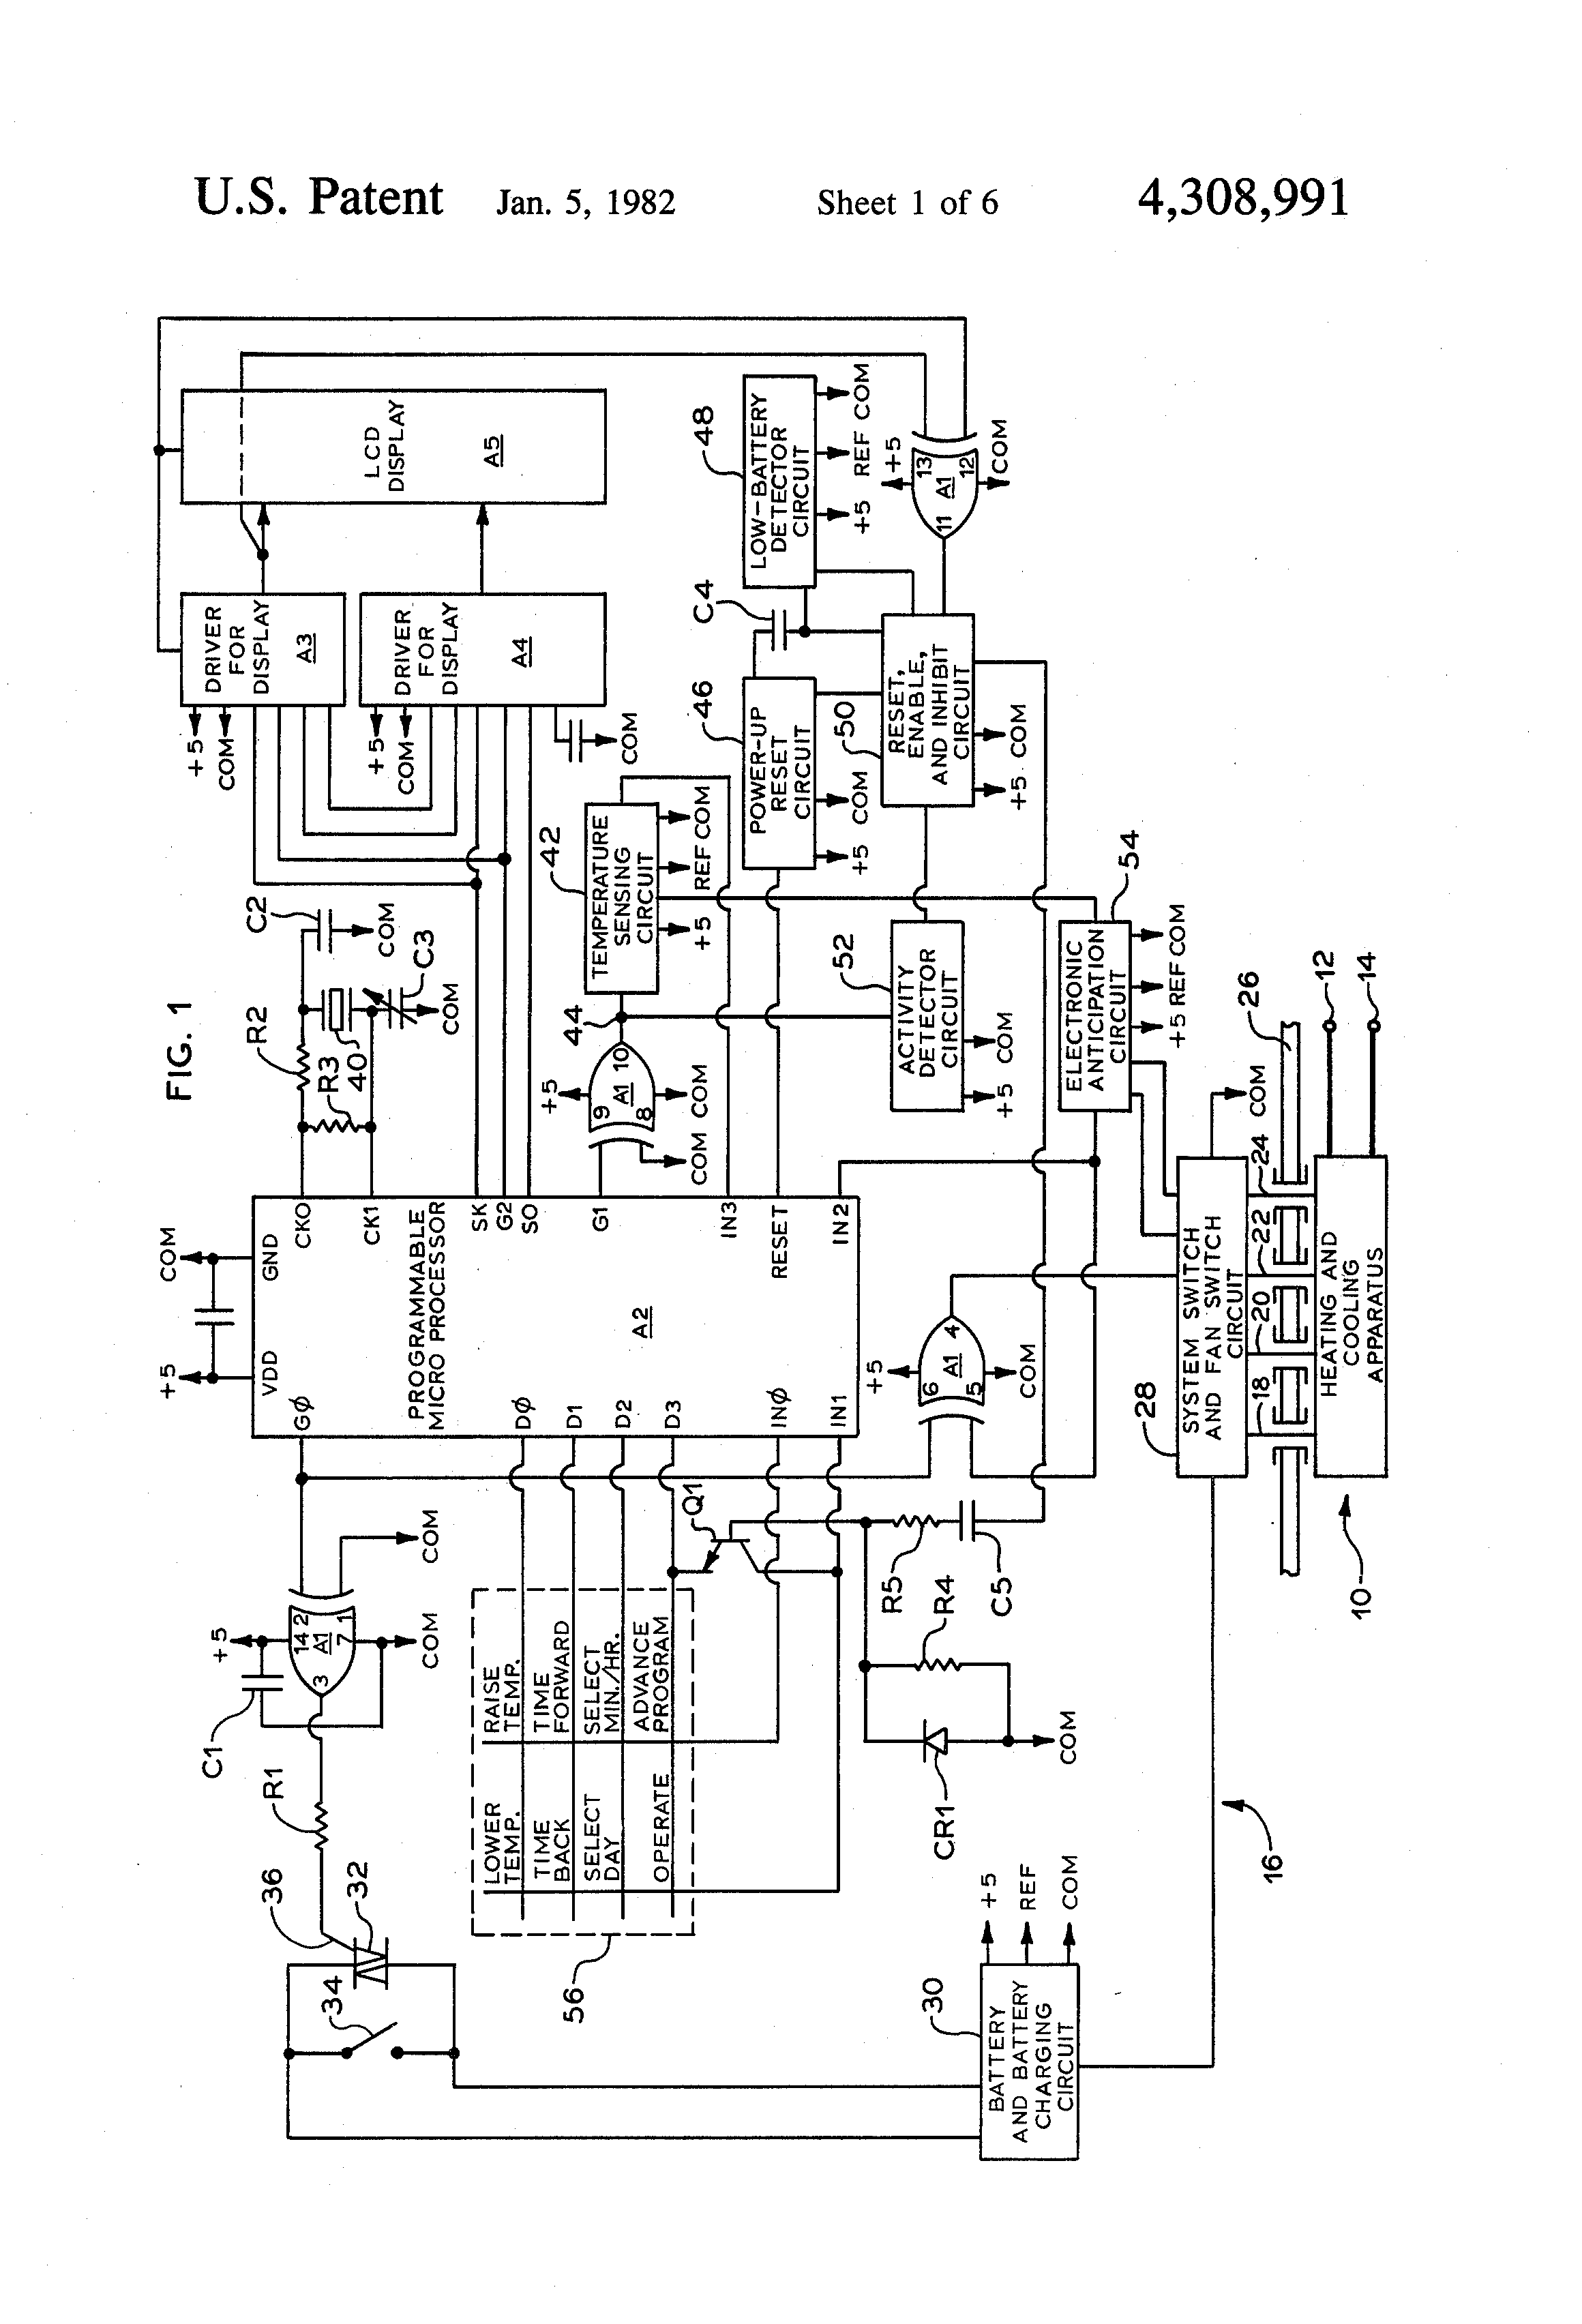 2005 international 4300 dt466 belt routing diagram